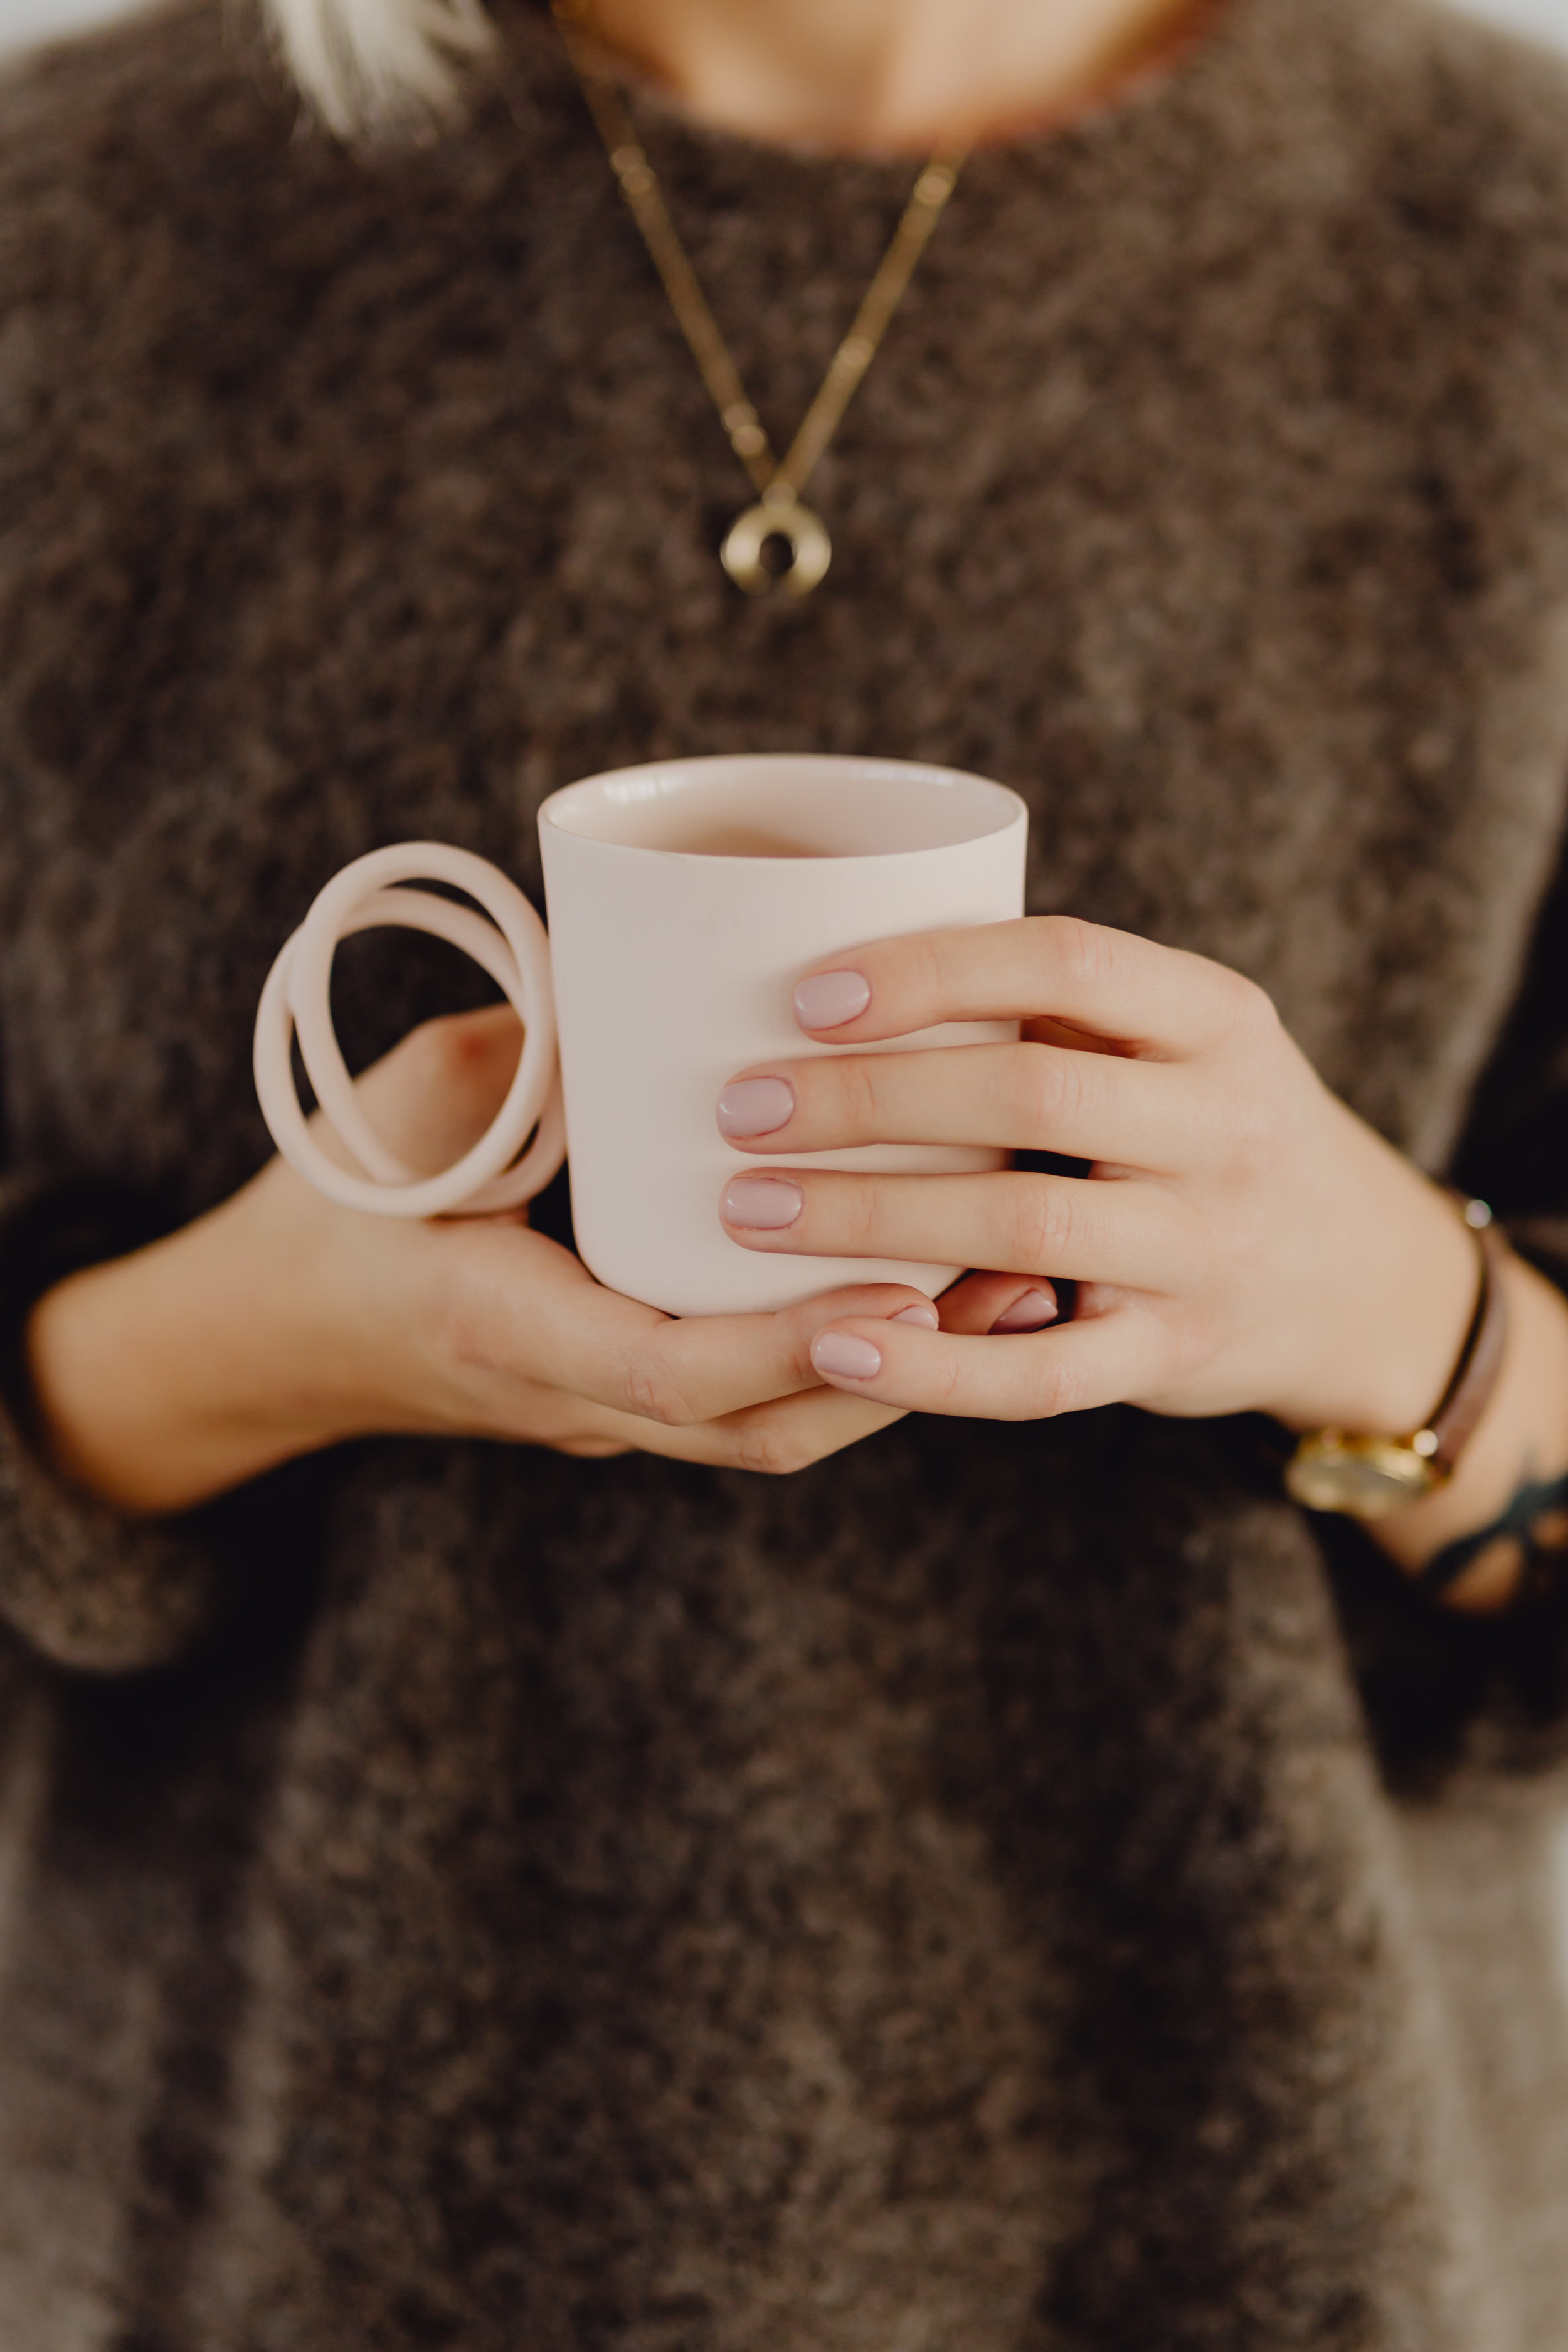 kaboompics_A woman in a brown sweater holds a pink, minimalist mug.jpg